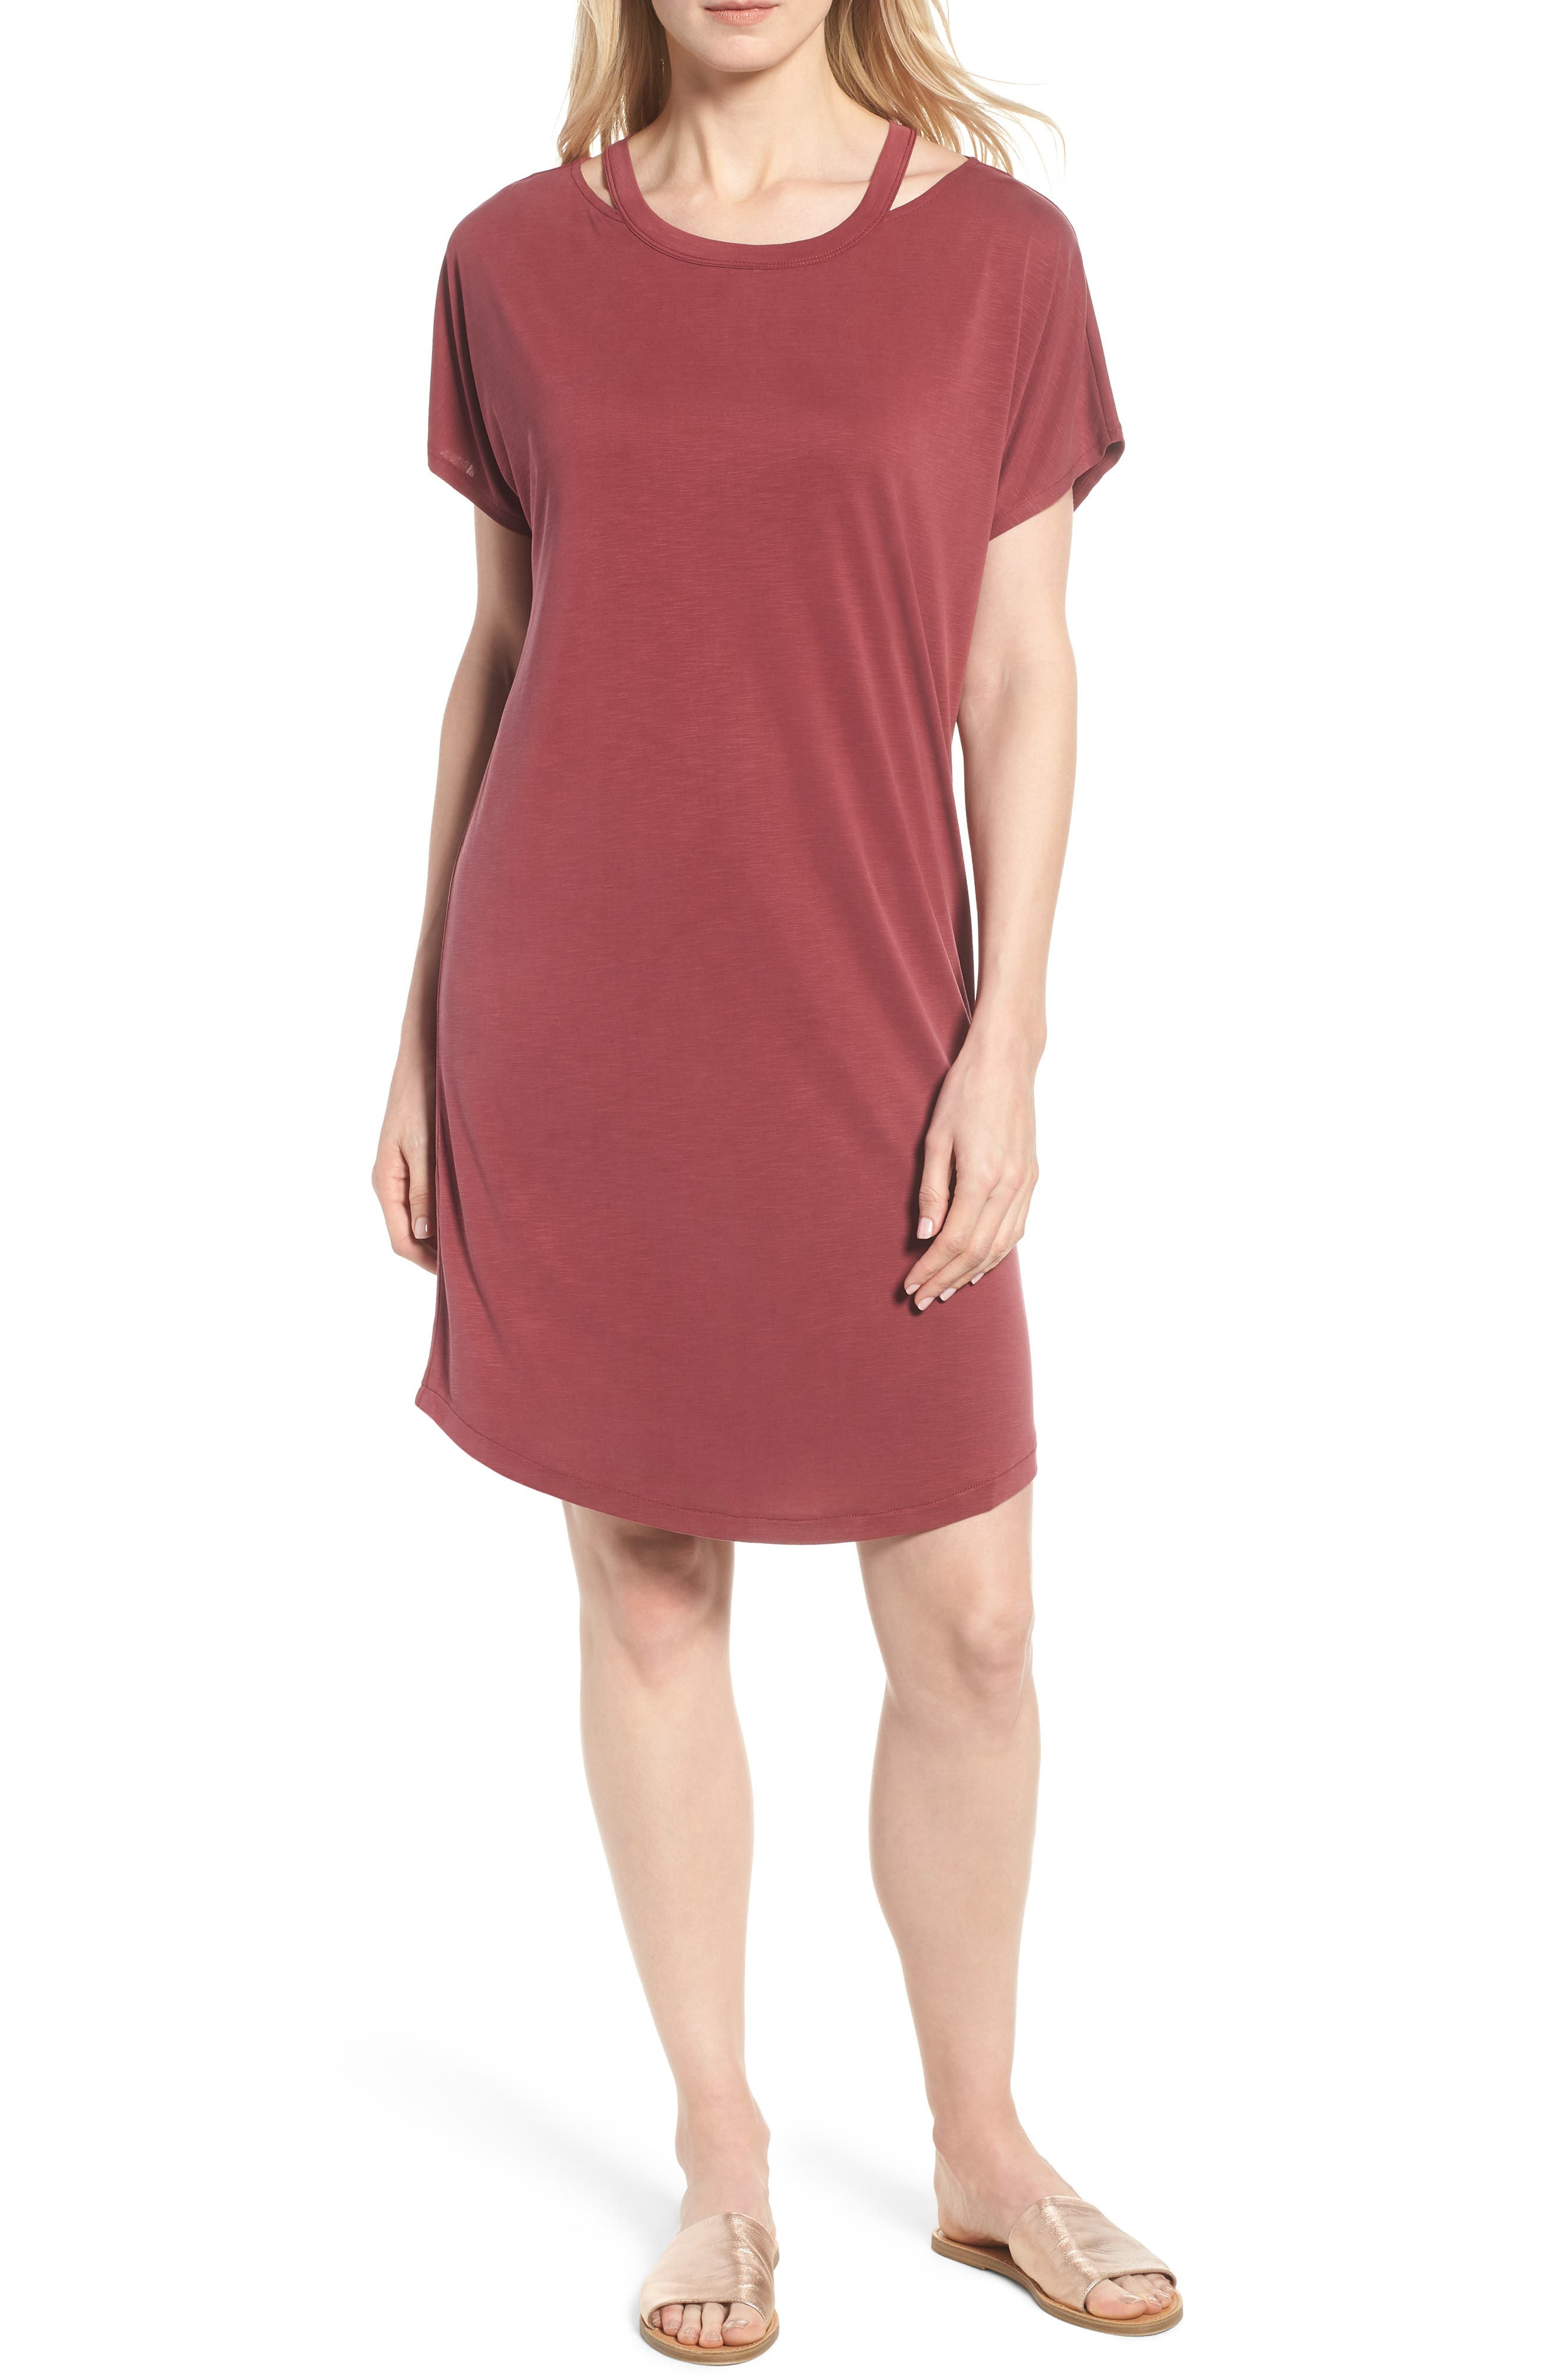 Open Road Dress,                         Main,                         color, Washed Raisin